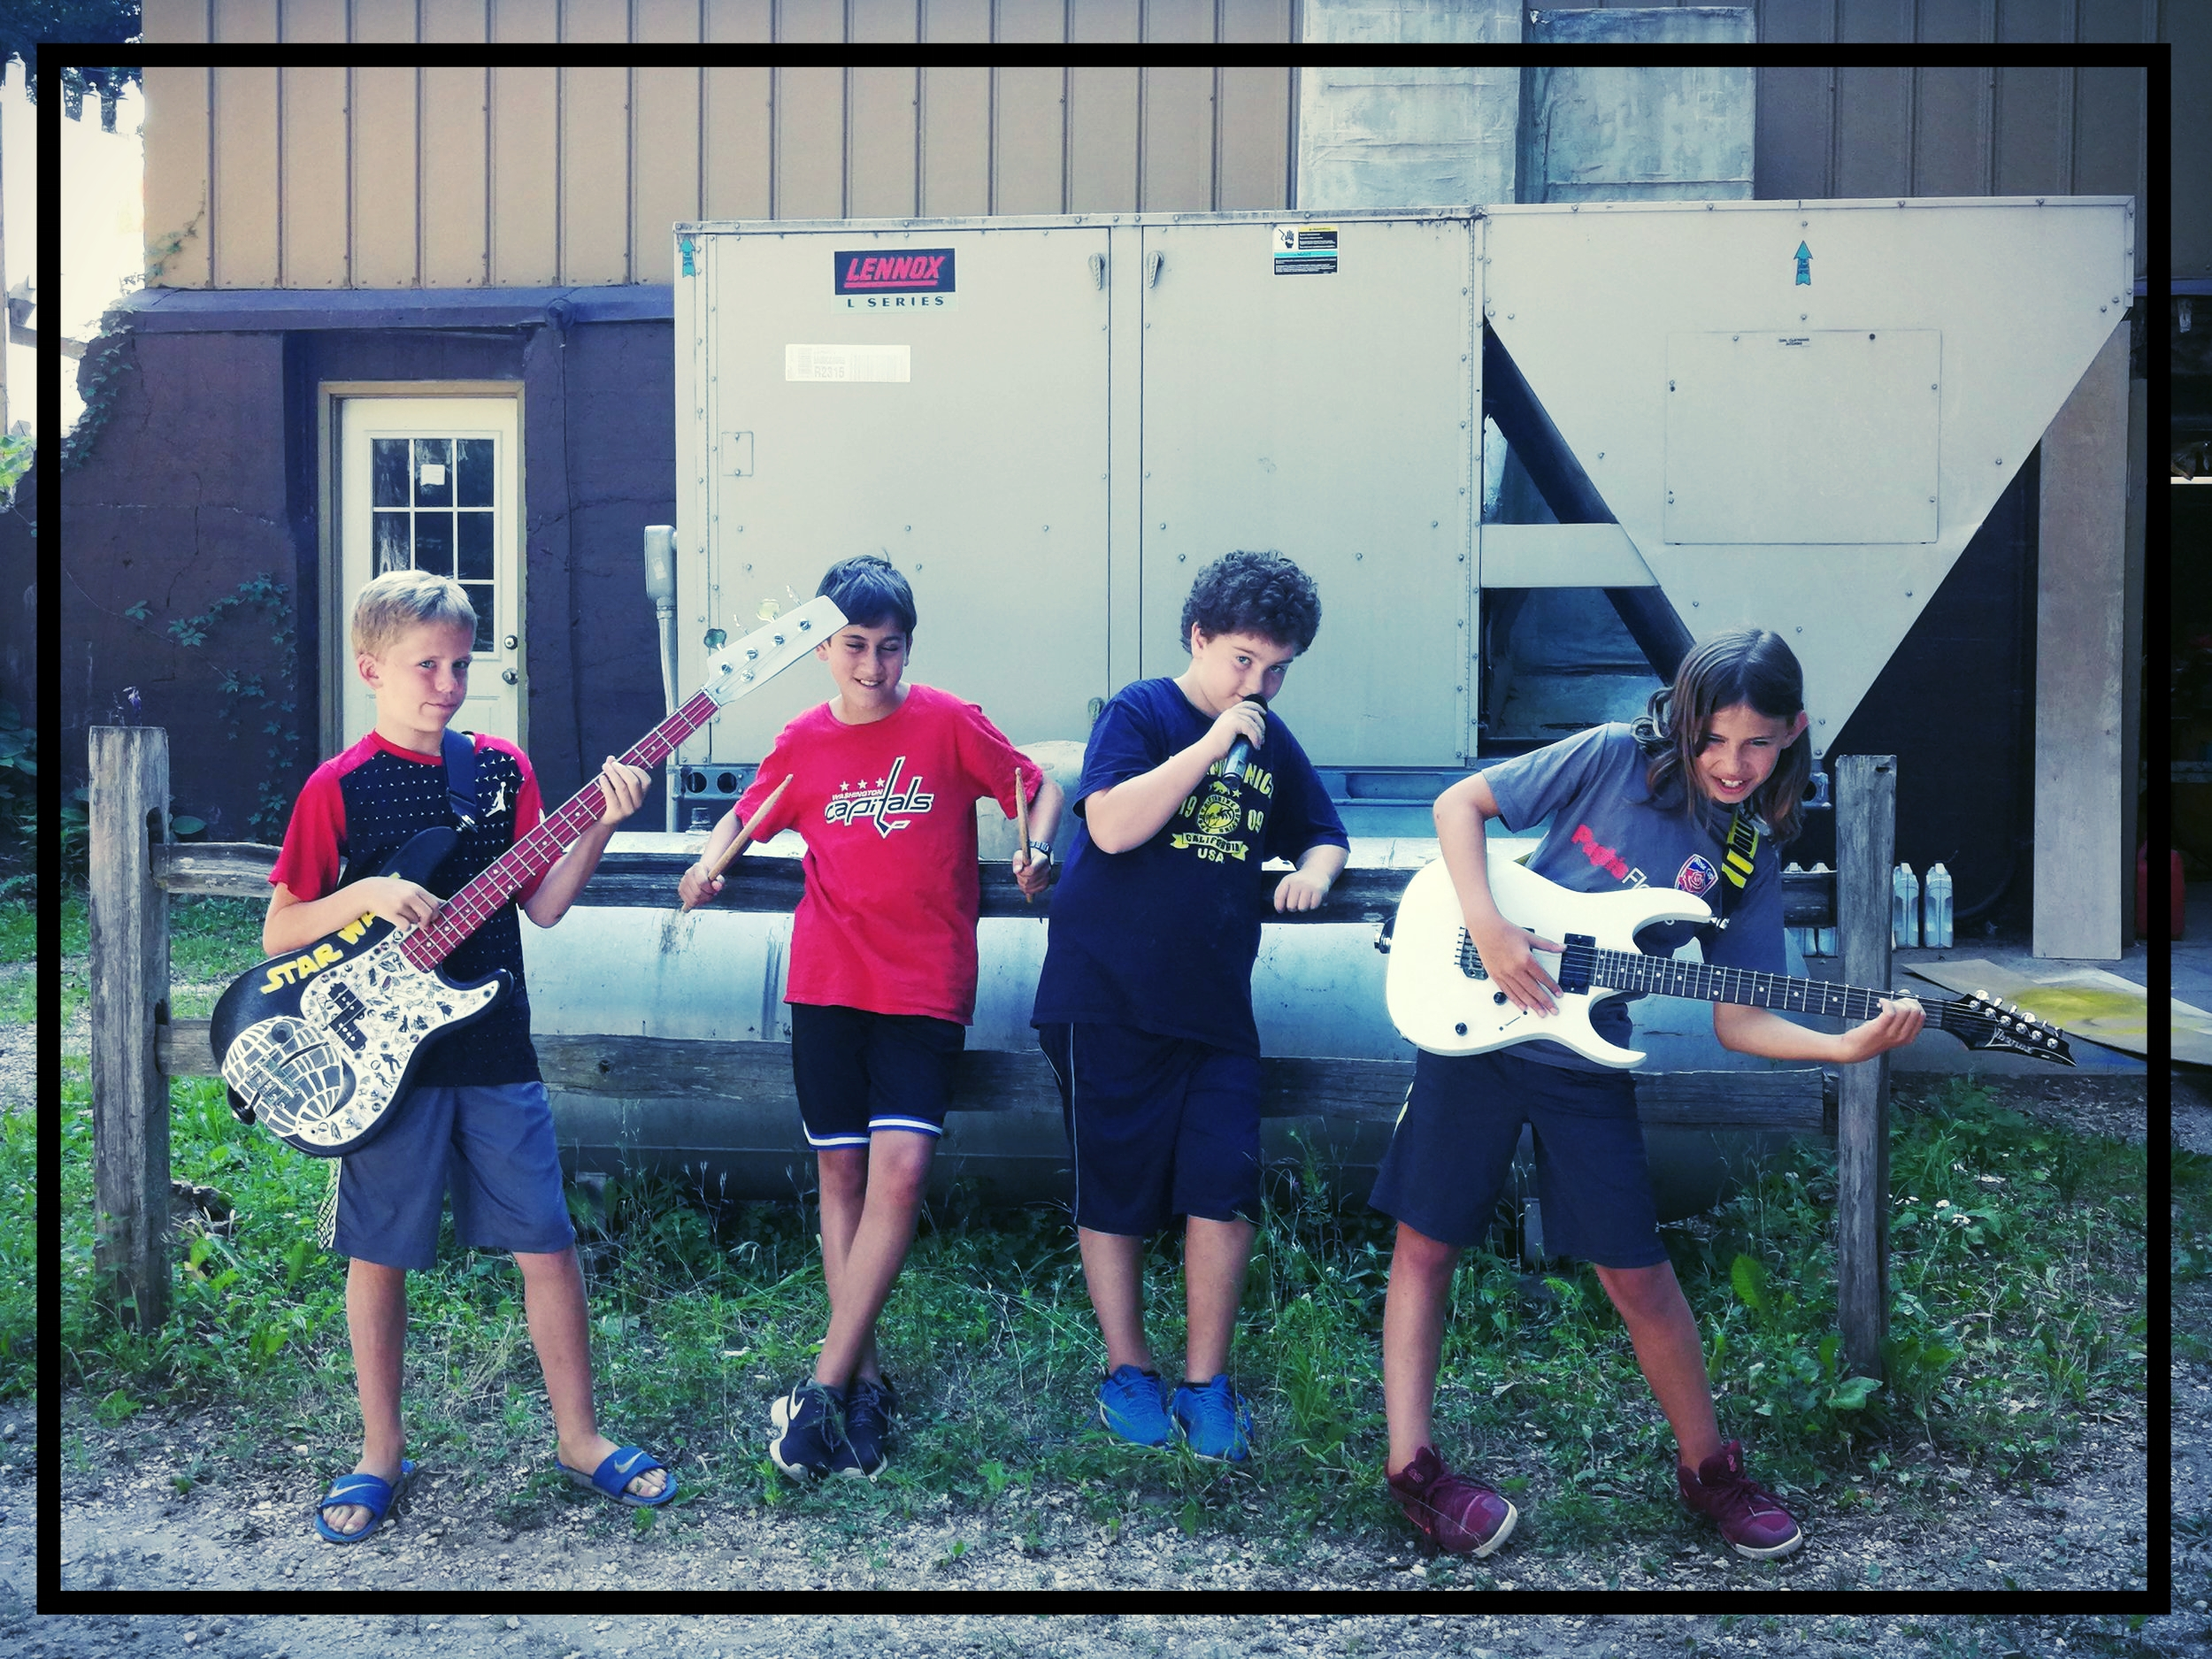 The band and the air conditioner that changed their lives